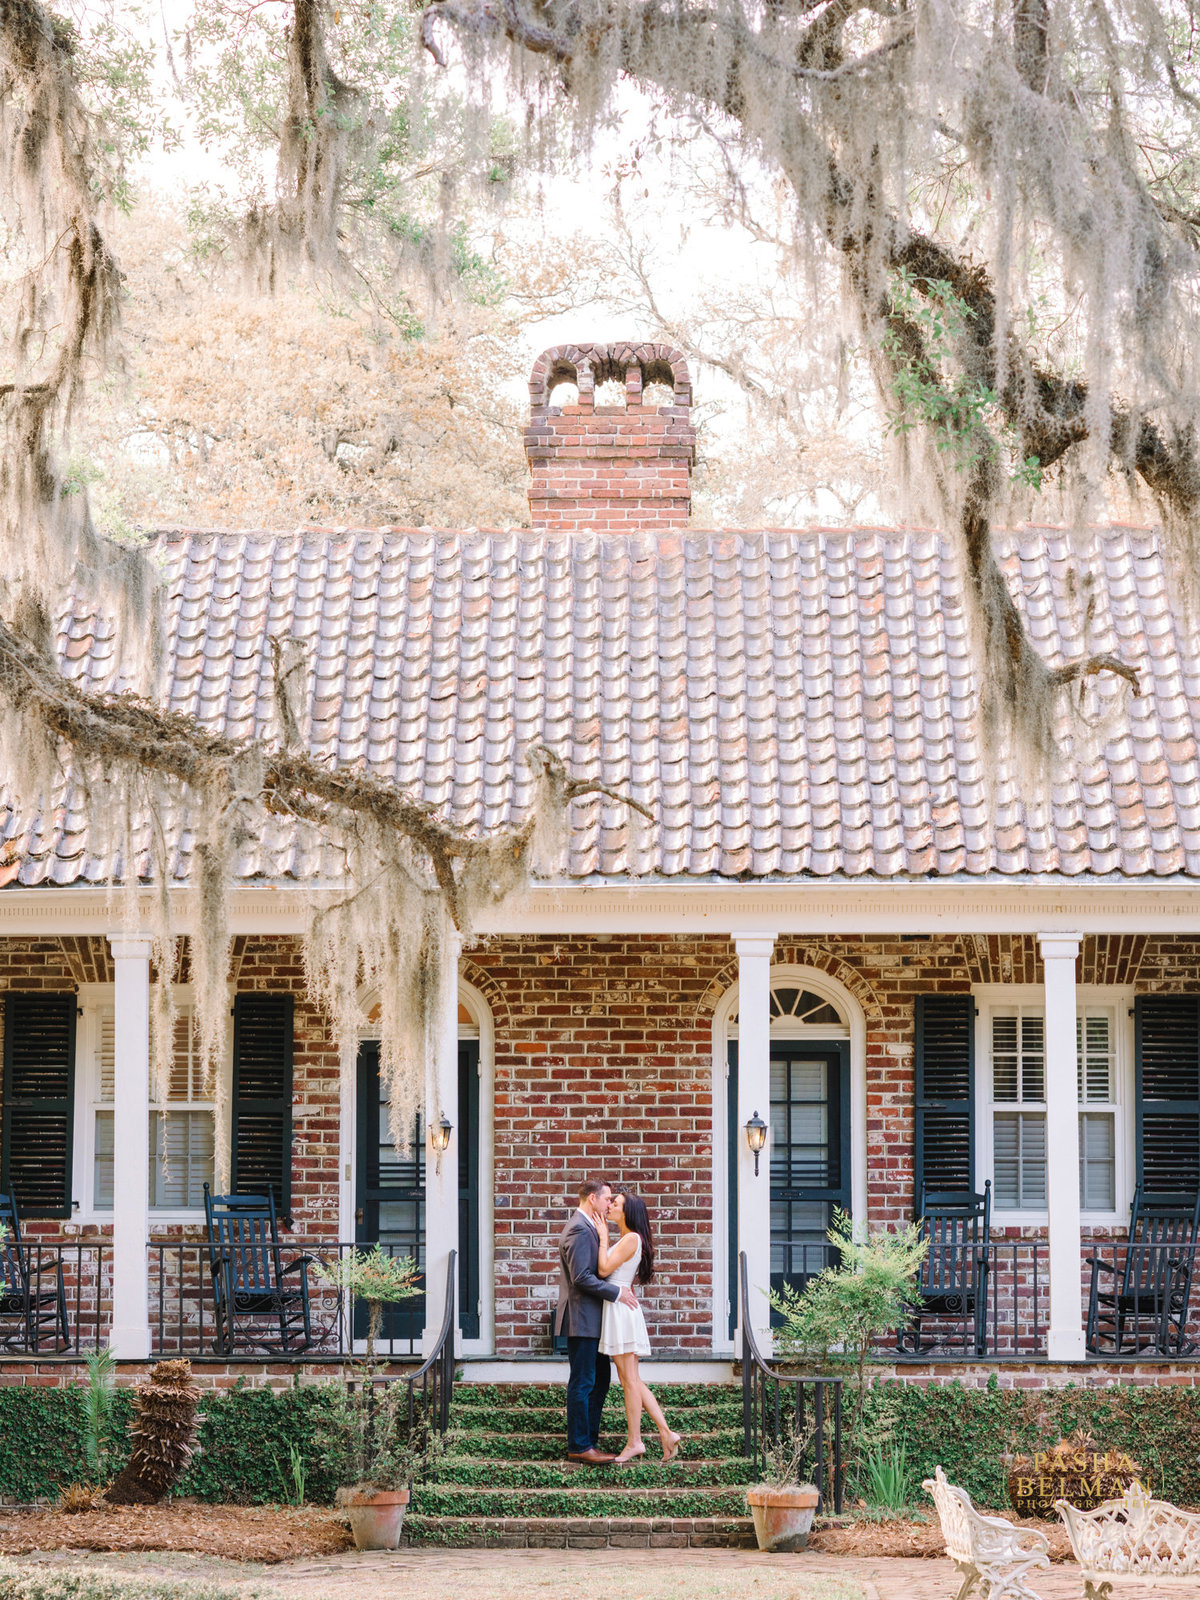 Charleston Engagement Photography | Engagement Pictures in Charleston | Engagement Portraits by Pasha Belman Photographer-17